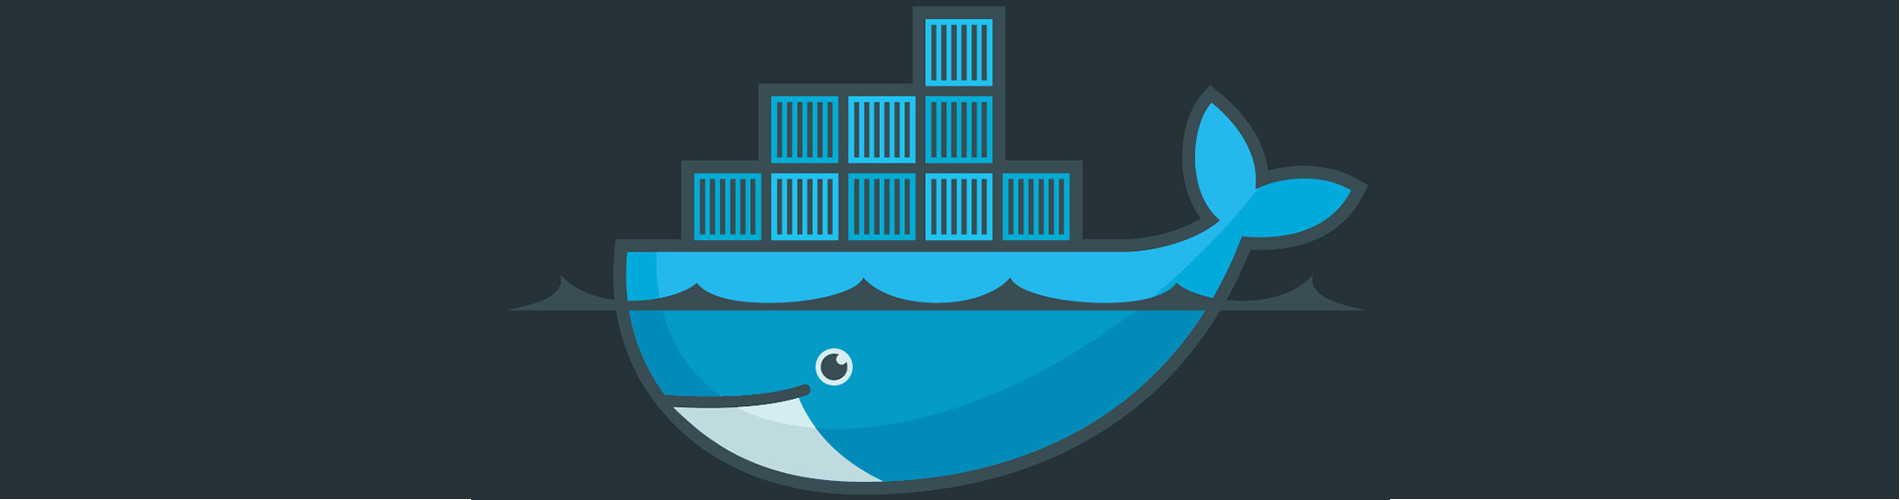 Building a Dynamically Linked Docker v-1.6.2 feature image